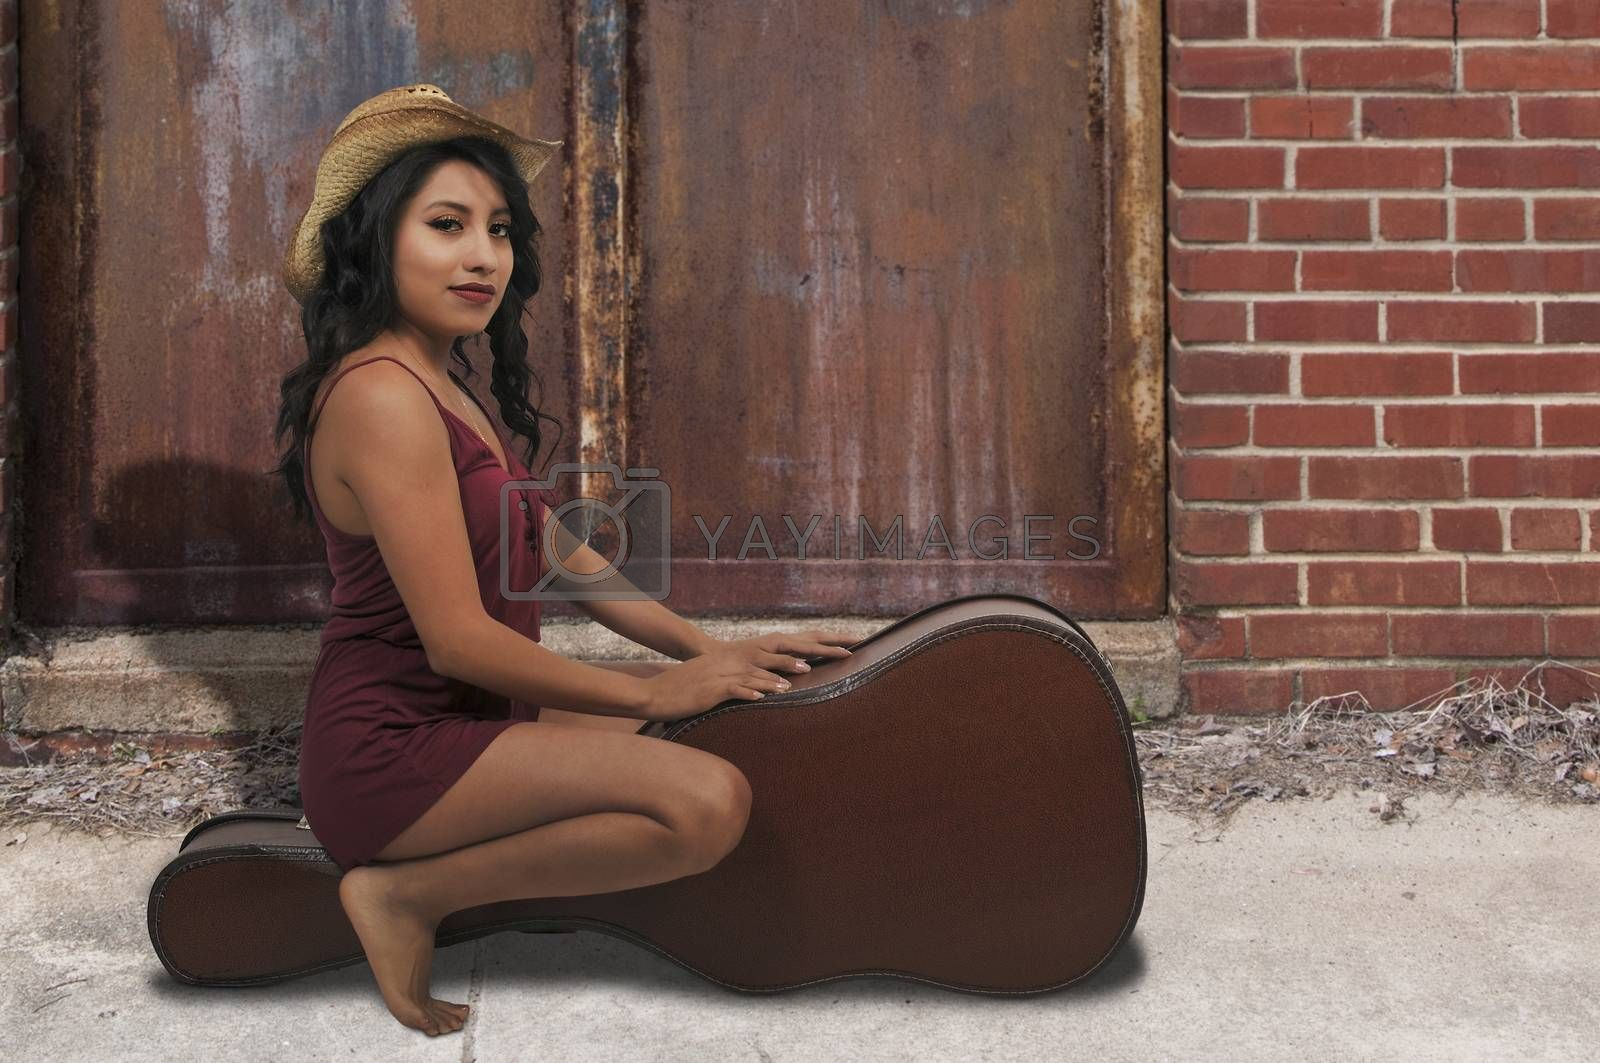 Beautiful young woman sitting on a acoustic guitar case